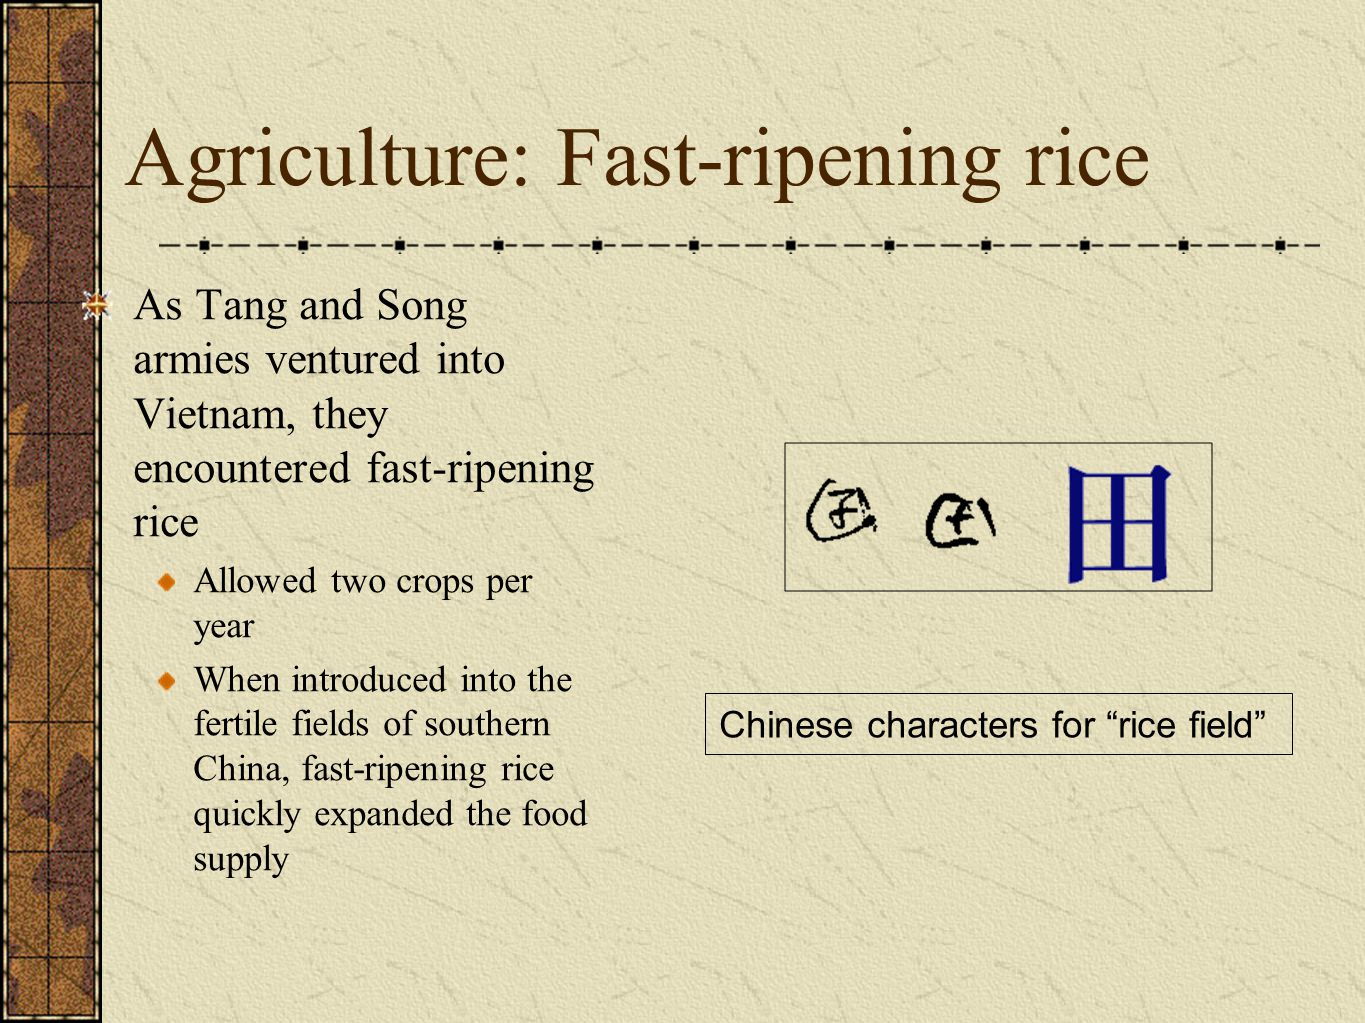 Agriculture: Fast-ripening rice As Tang and Song armies ventured into Vietnam, they encountered fast-ripening rice Allowed two crops per year When introduced into the fertile fields of southern China, fast-ripening rice quickly expanded the food supply Chinese characters for rice field